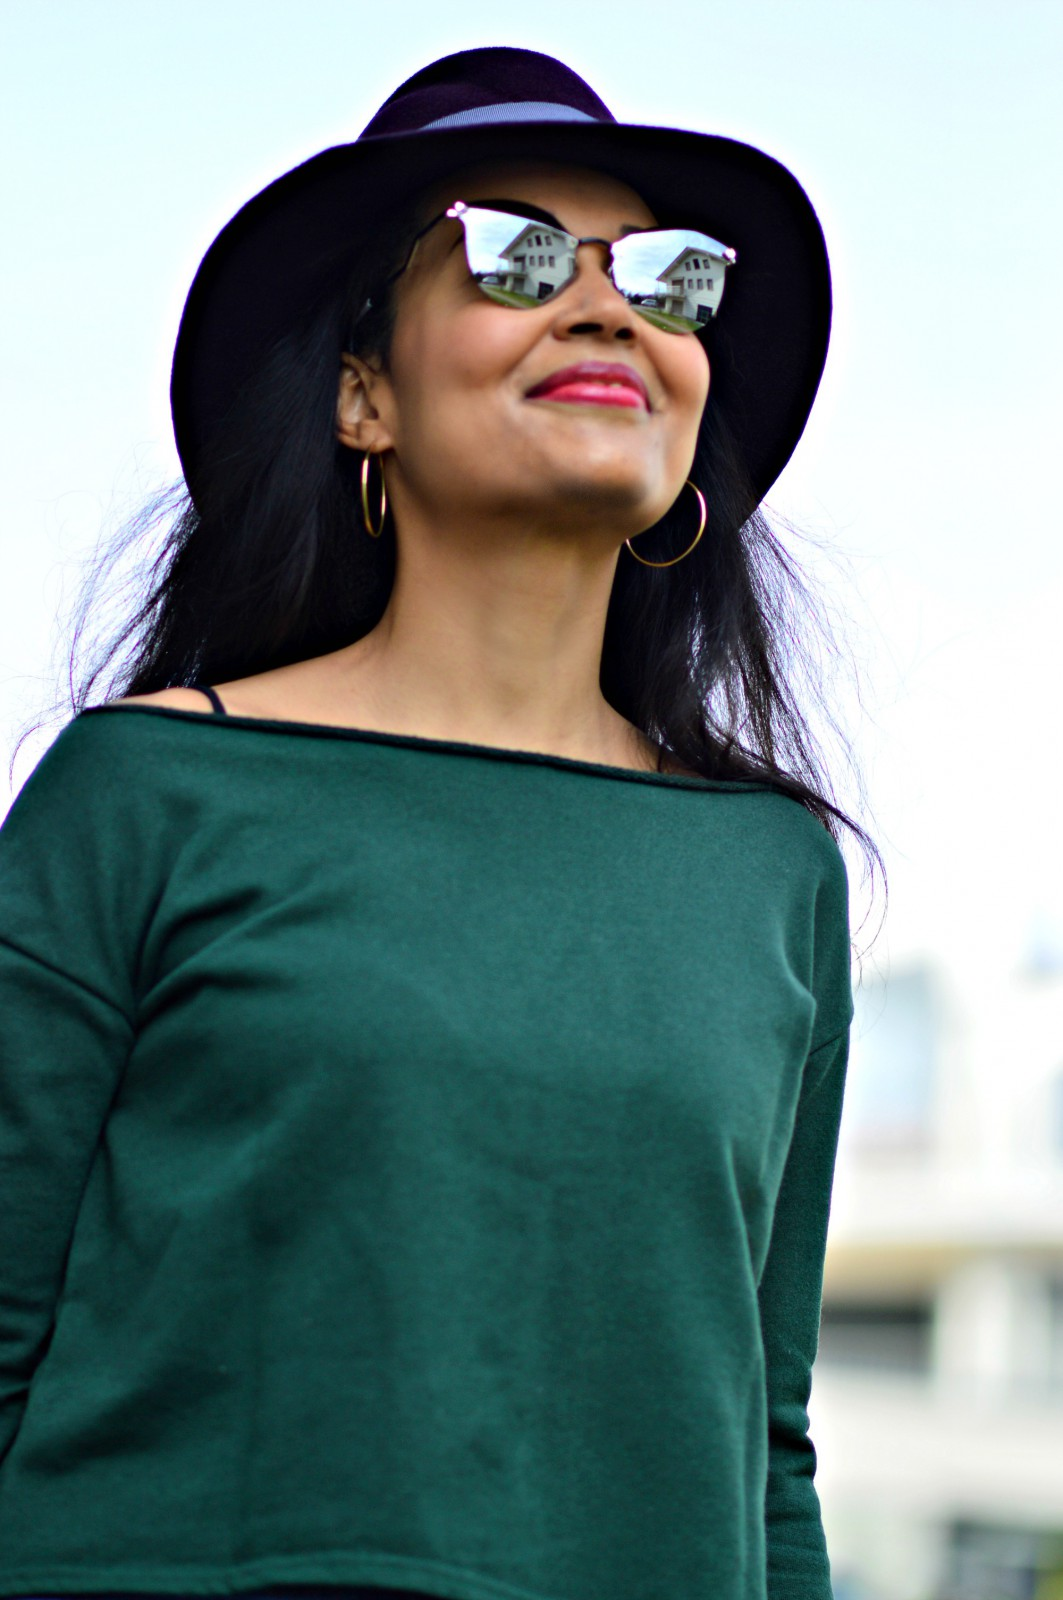 Green sweatshirt_dior sunglasses_metallic sunglasses